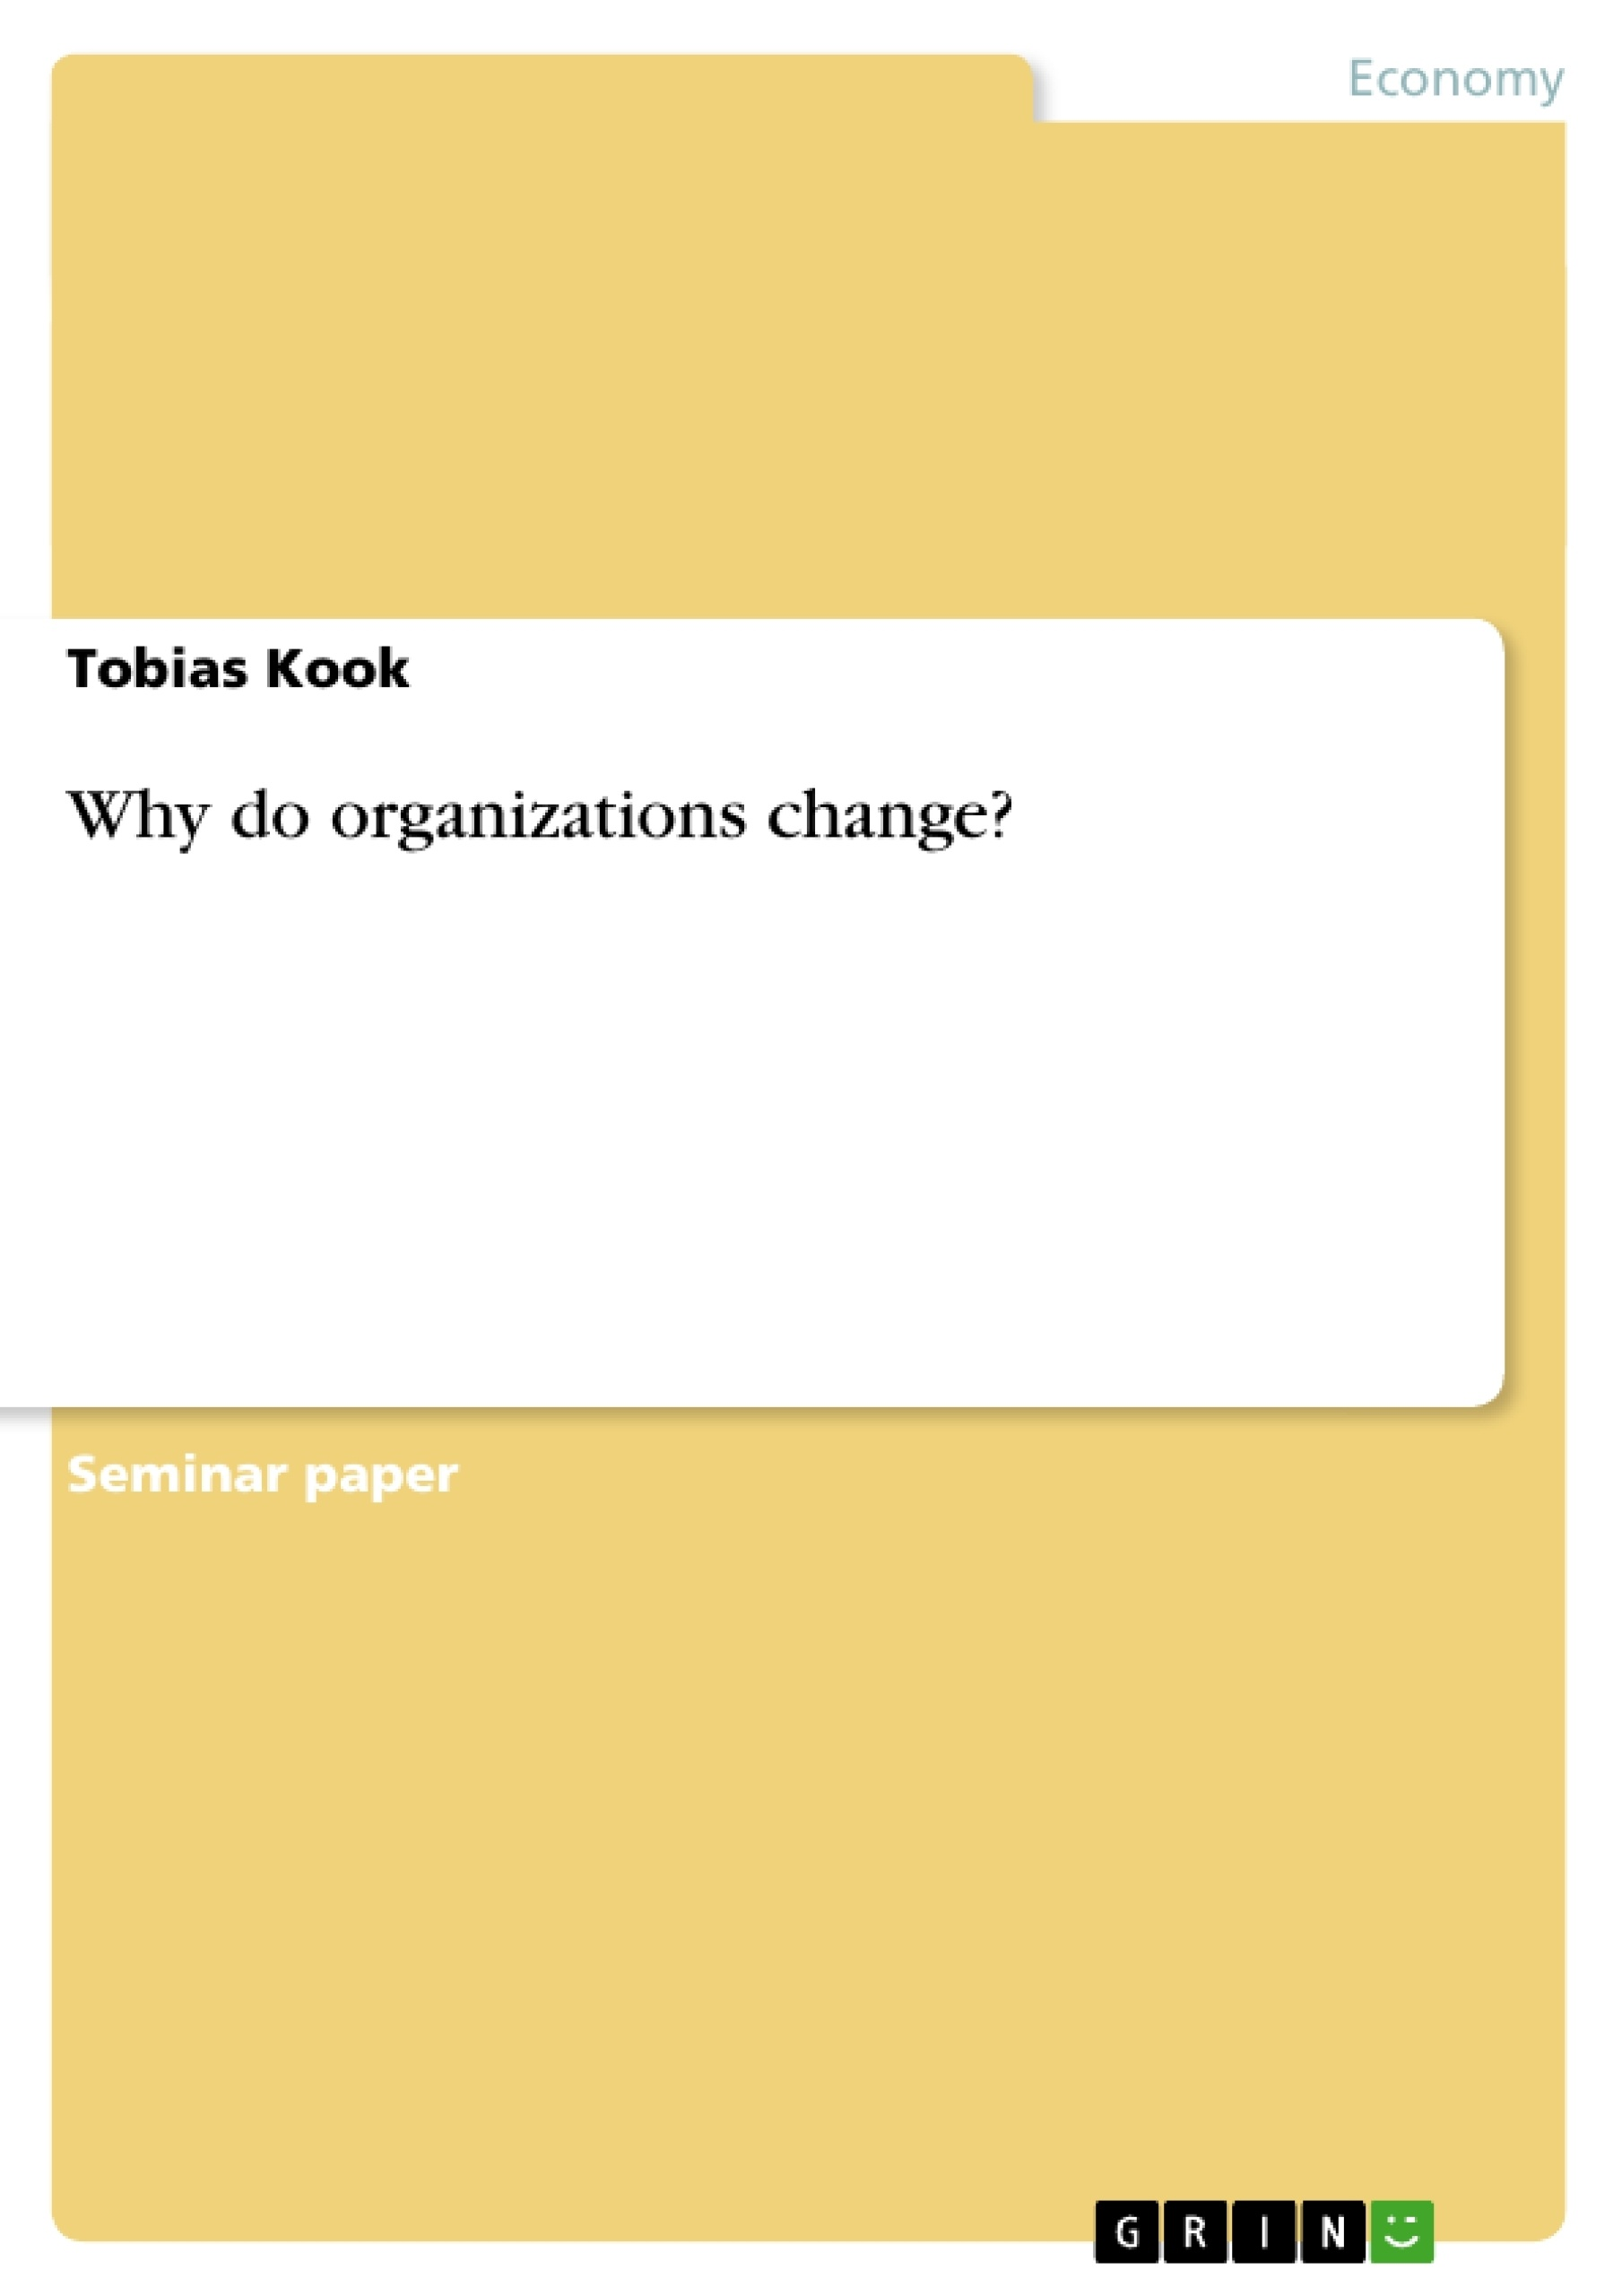 Title: Why do organizations change?